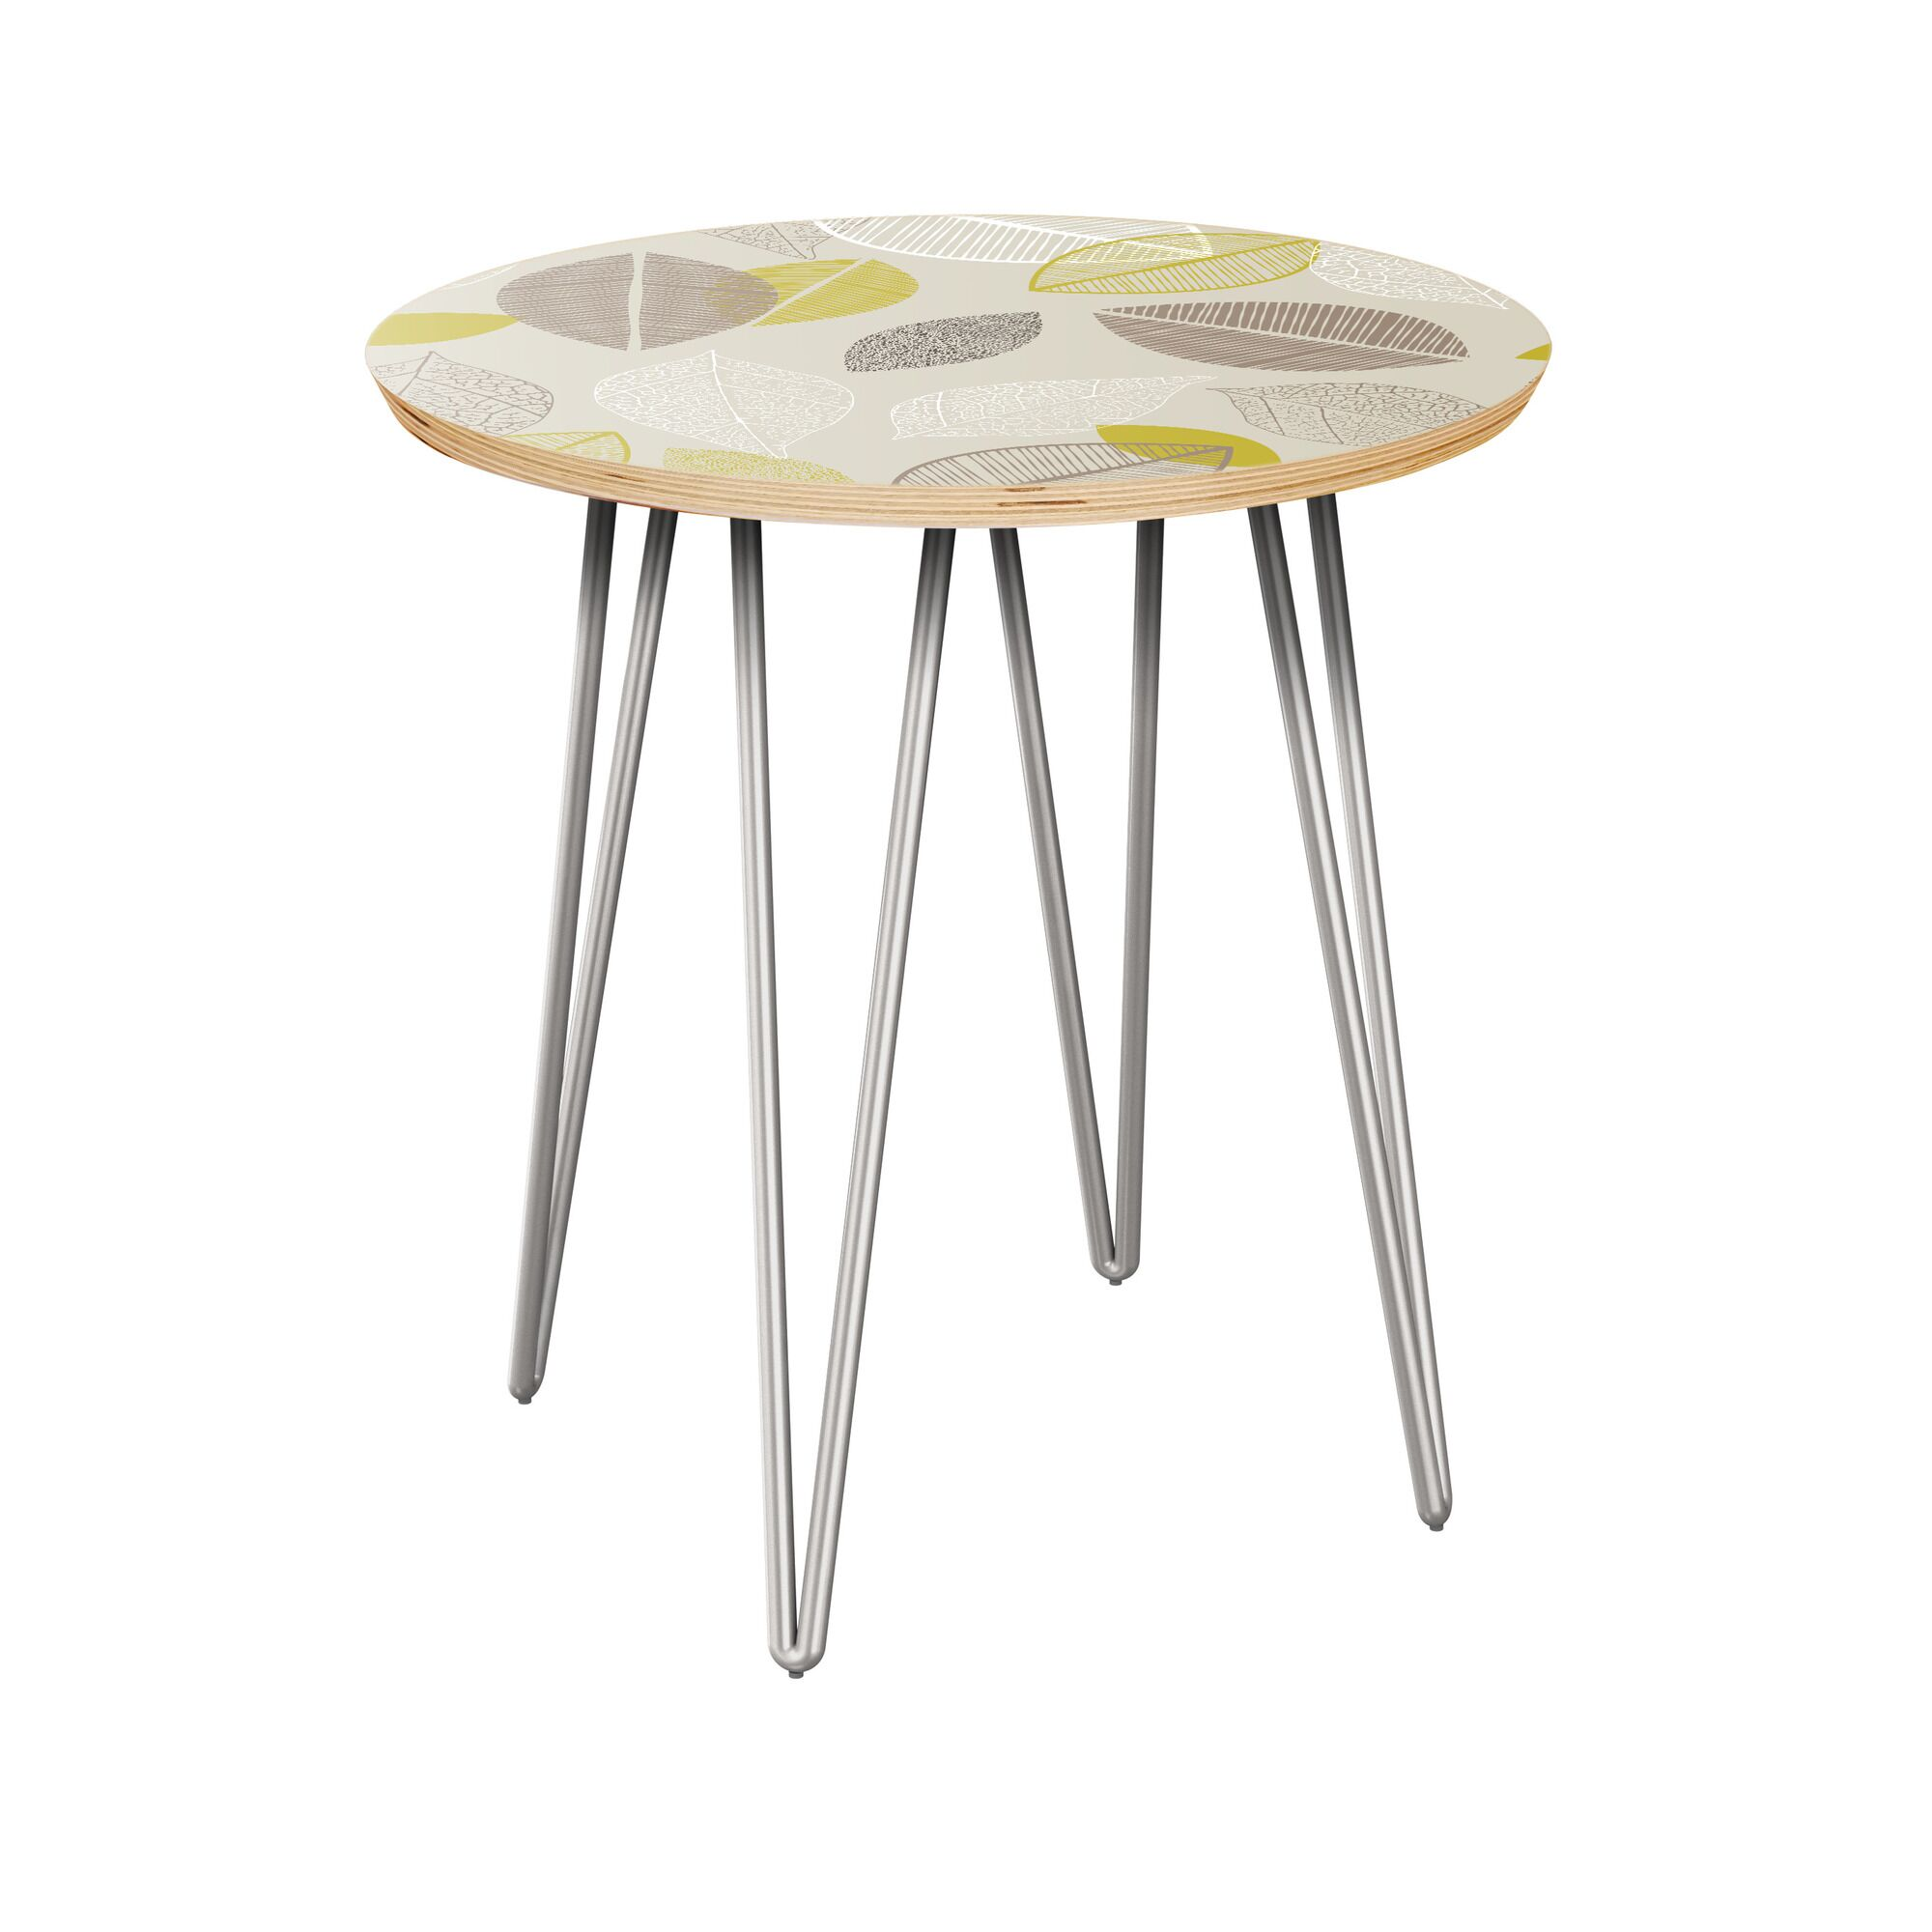 Julianna End Table Table Top Boarder Color: Natural, Table Base Color: Chrome, Table Top Color: Blue